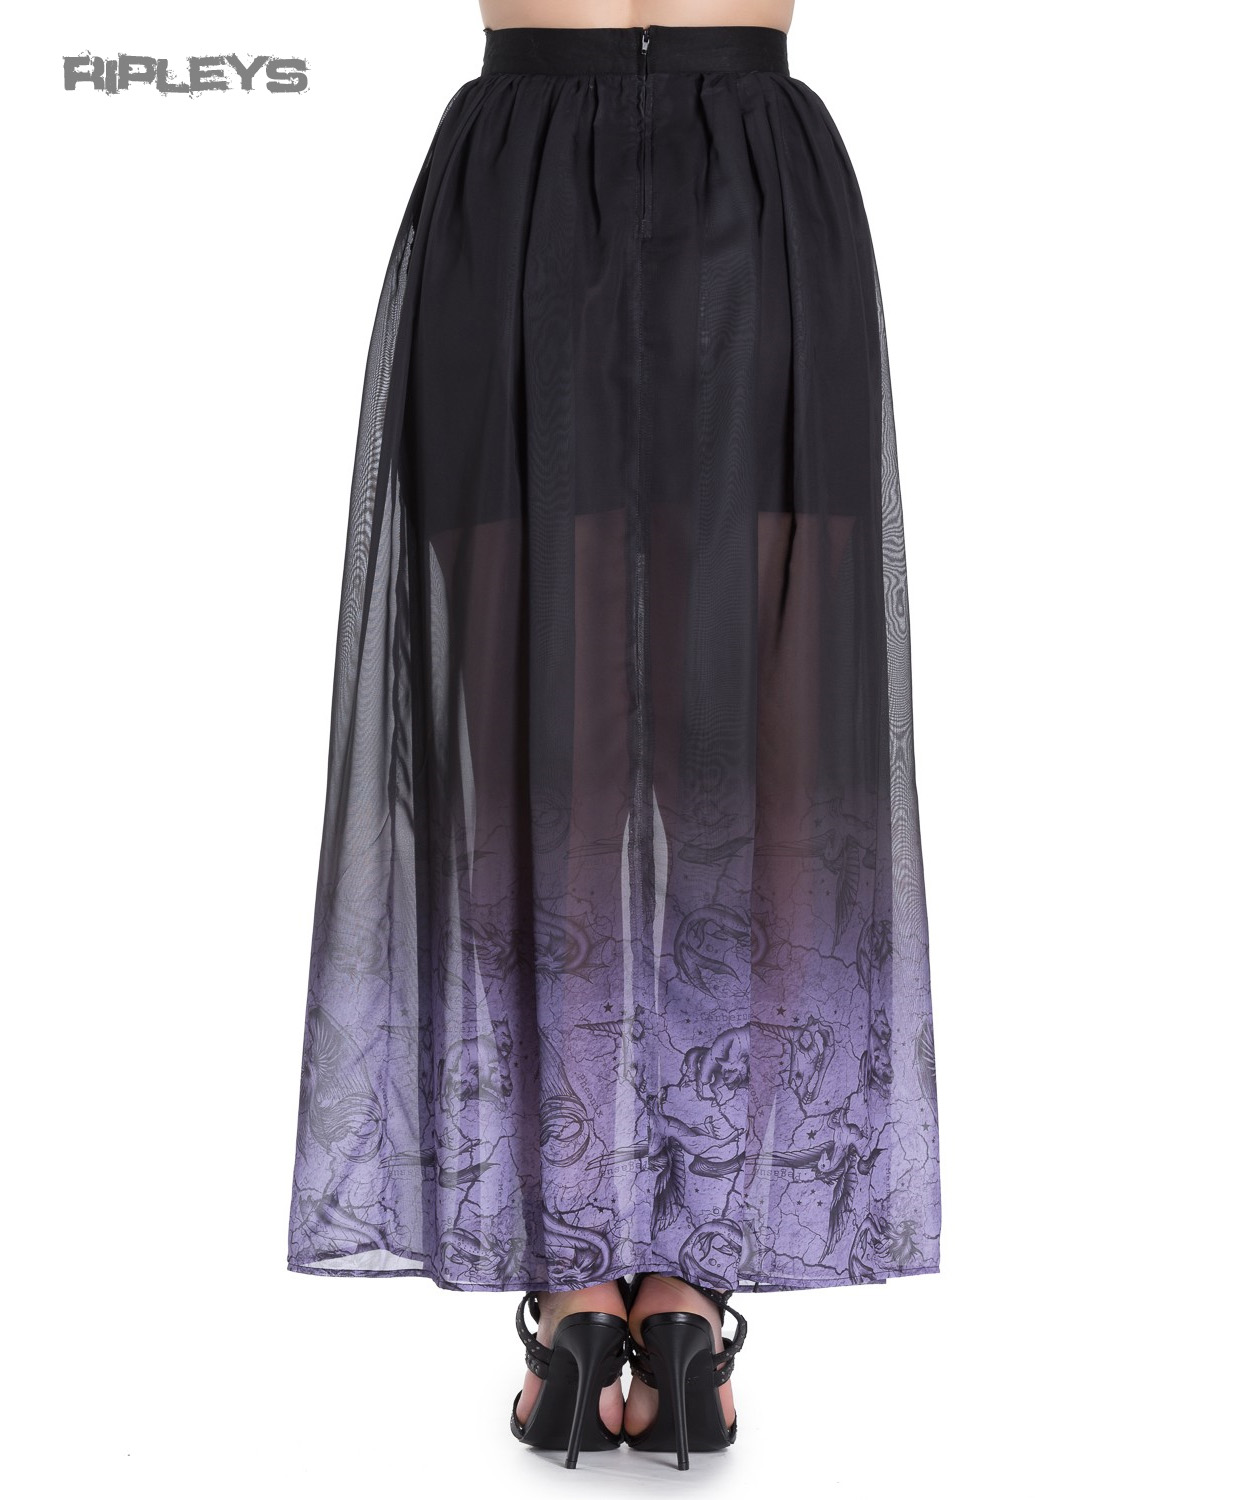 Hell-Bunny-Spin-Doctor-Goth-Purple-Mystical-EVADINE-Maxi-Skirt-All-Sizes thumbnail 4